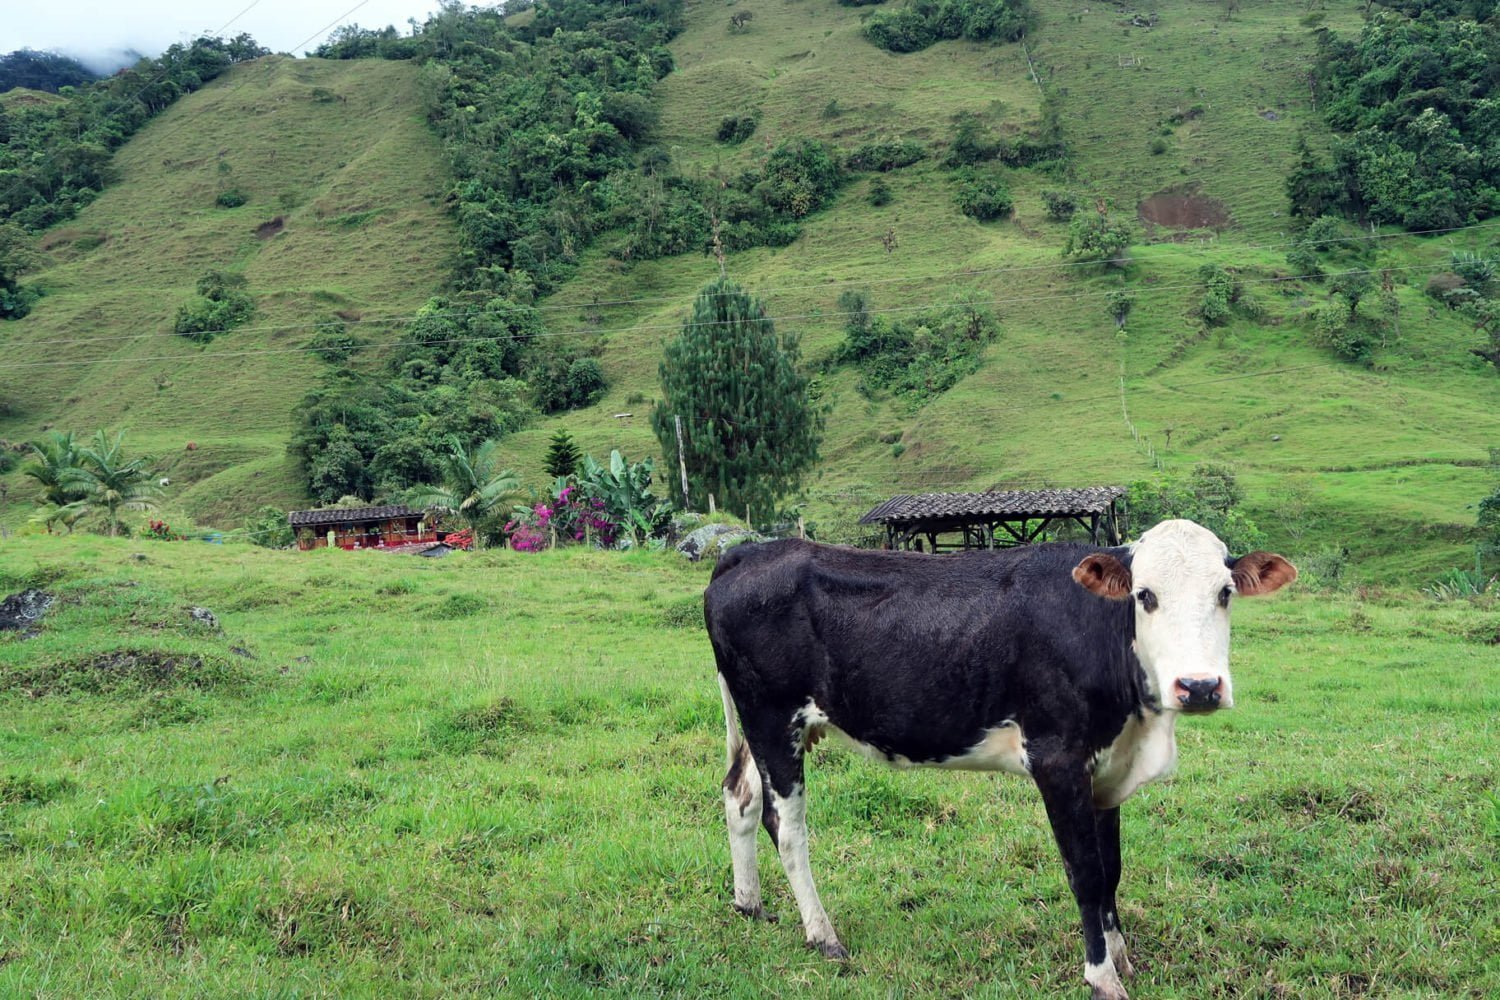 Cow in Pasture in Jardin Hiking Antioquia